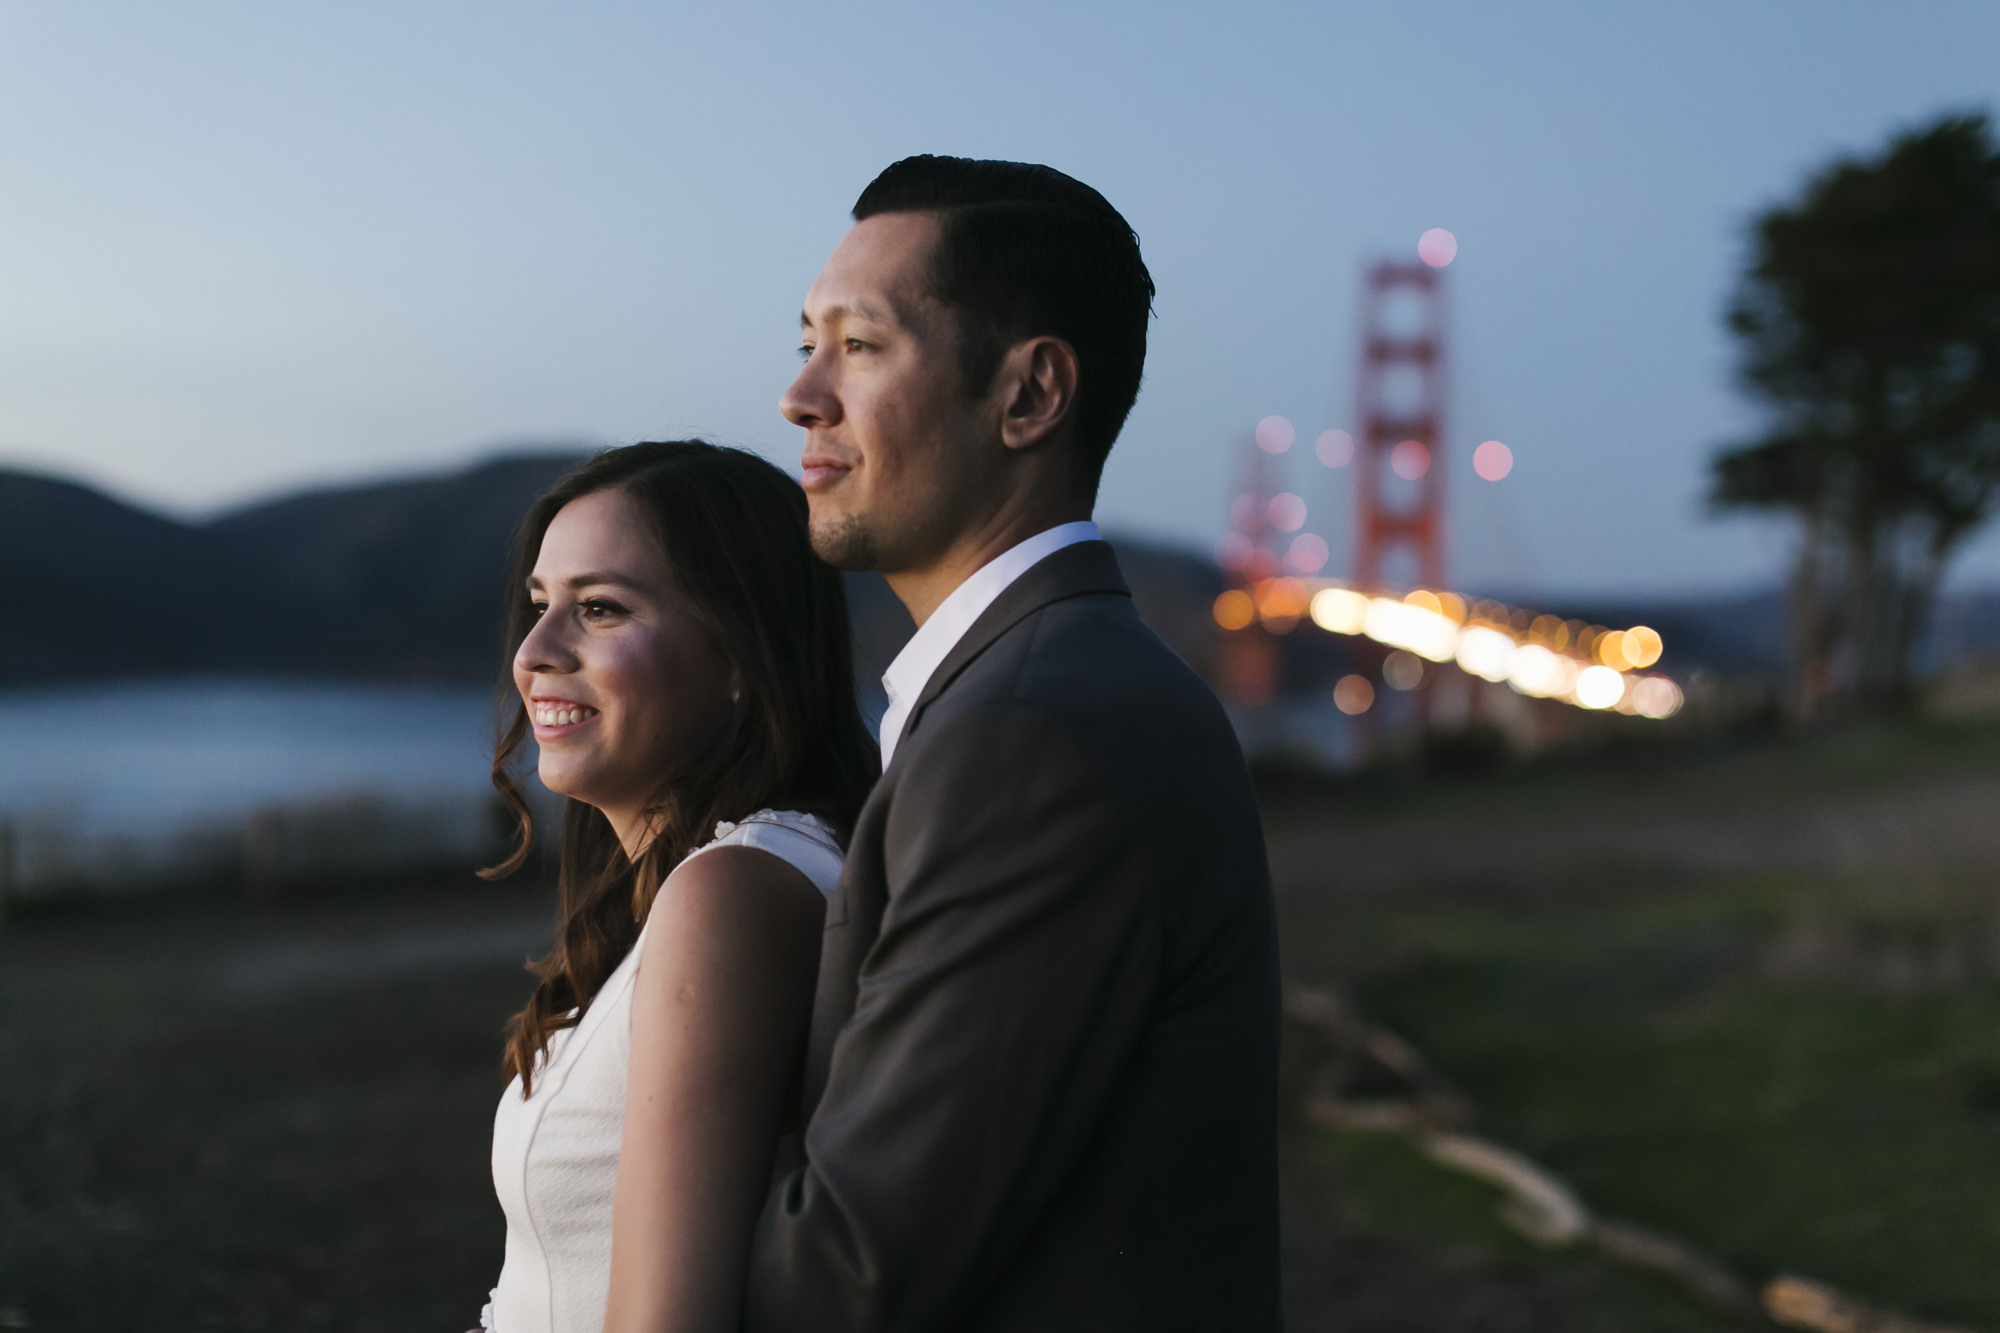 Couple enjoy the sunset in front of the Golden Gate Bridge in San Francisco